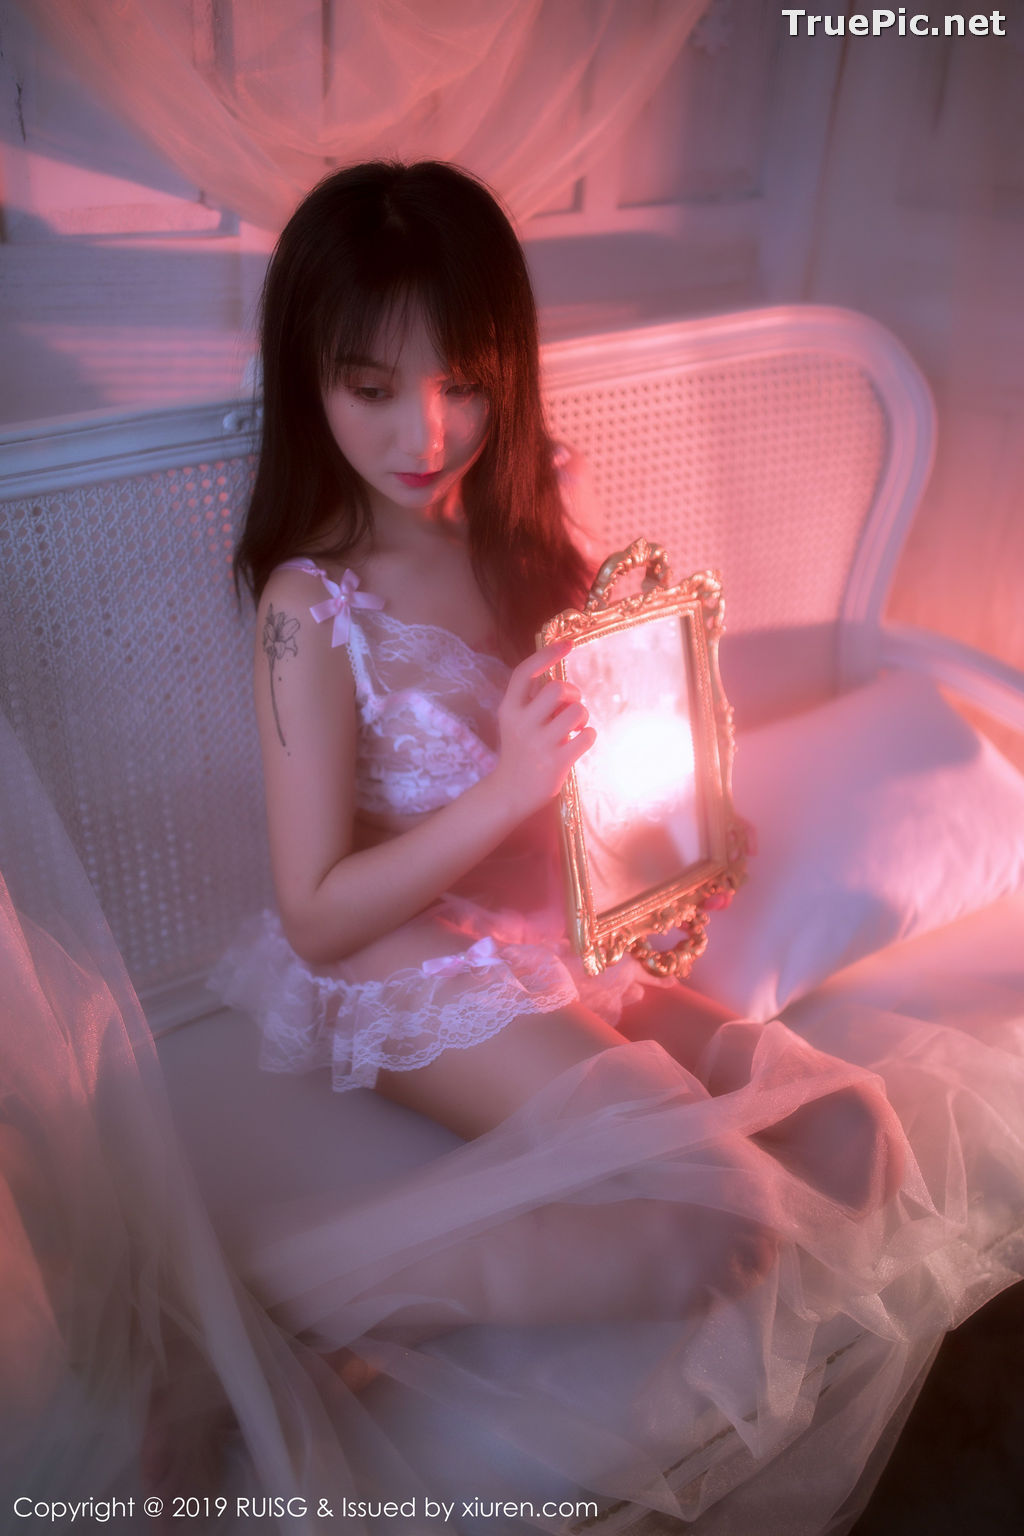 Image RuiSG Vol.079 - Chinese Model 小葡萄miki - White Angel In The Mirror - TruePic.net - Picture-7